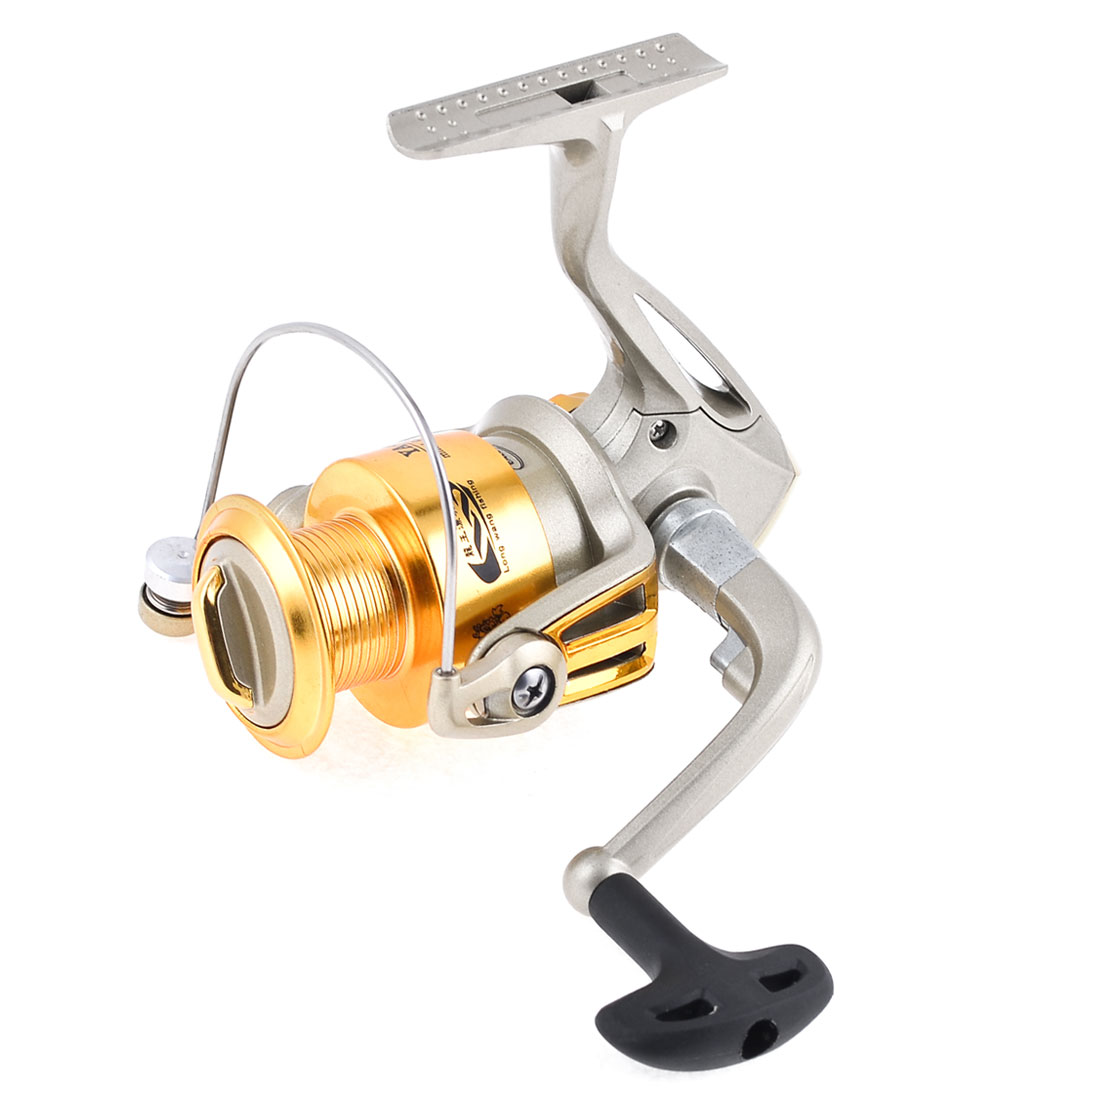 5.5:1 Gear Ratio 5 Ball Bearings Champagne Metallic Angling Spinning Reel